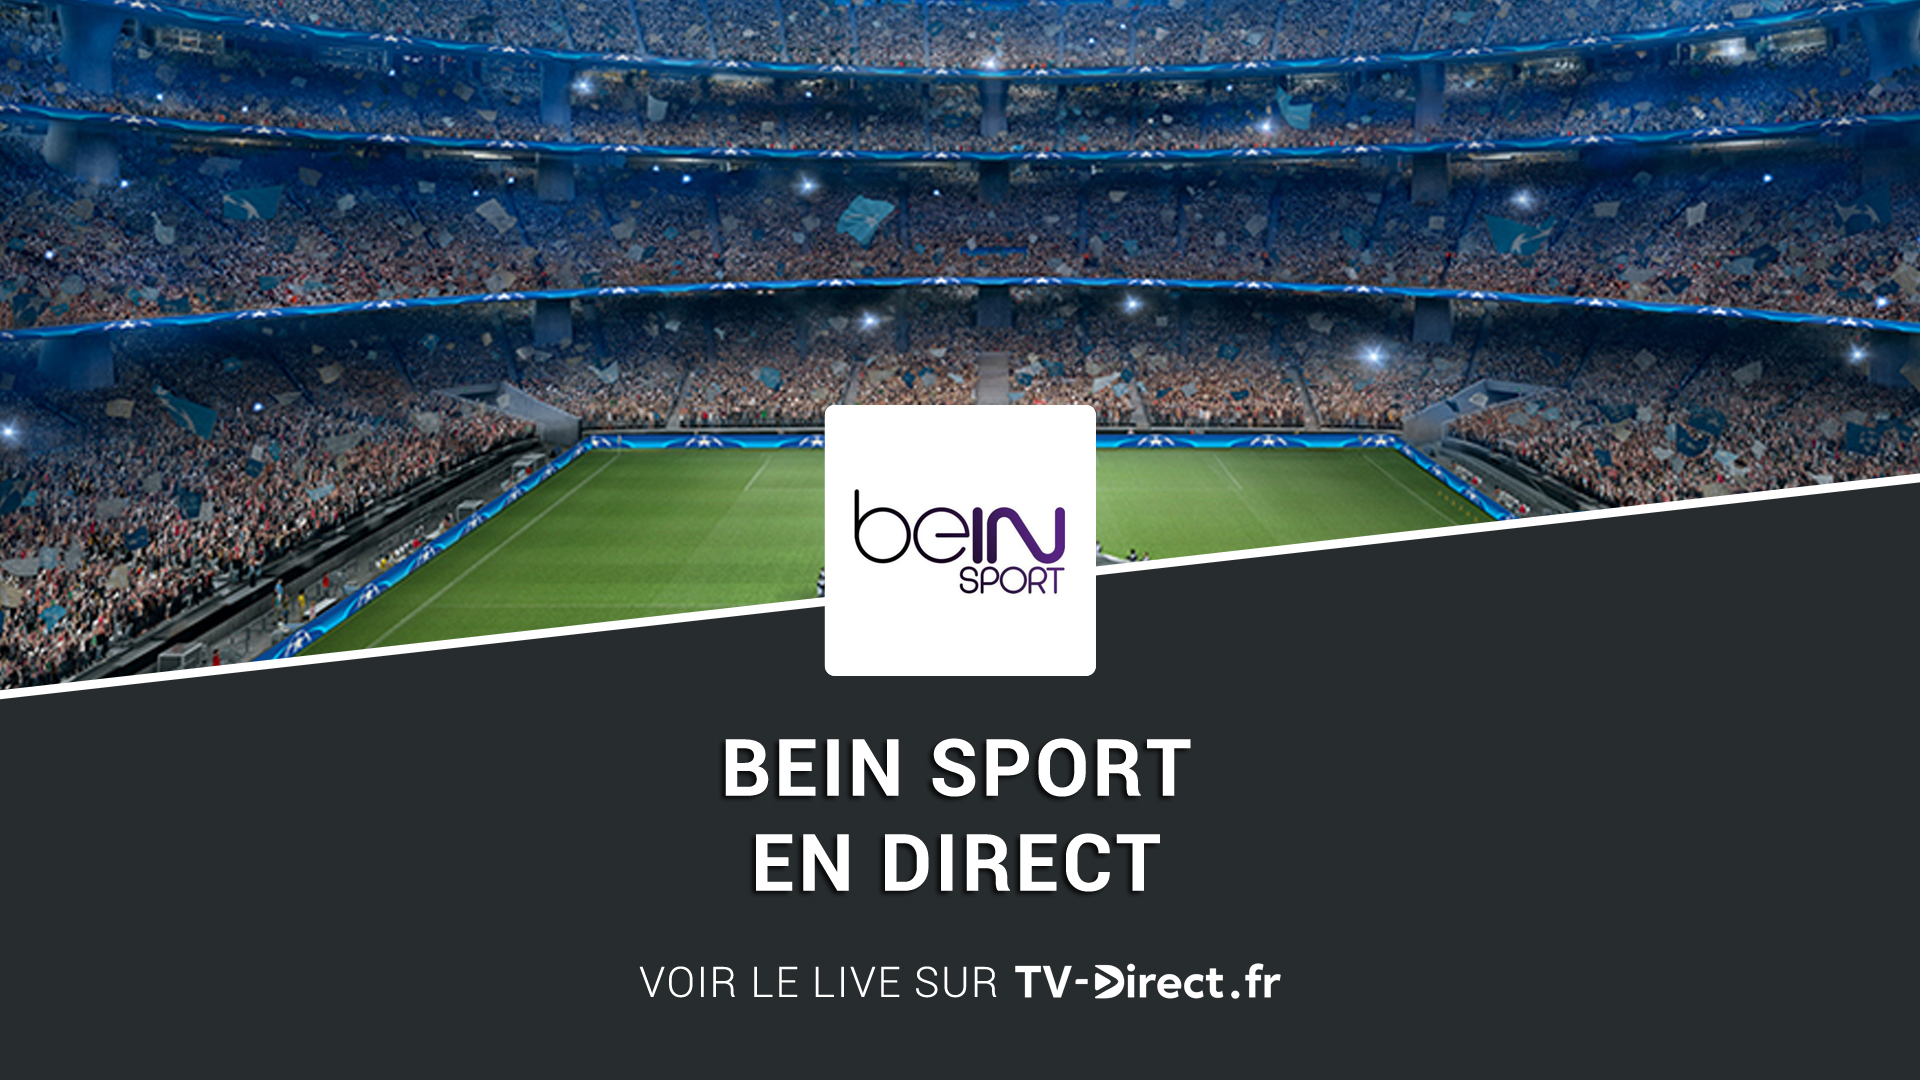 bein sport direct regarder bein sport en direct live sur internet. Black Bedroom Furniture Sets. Home Design Ideas